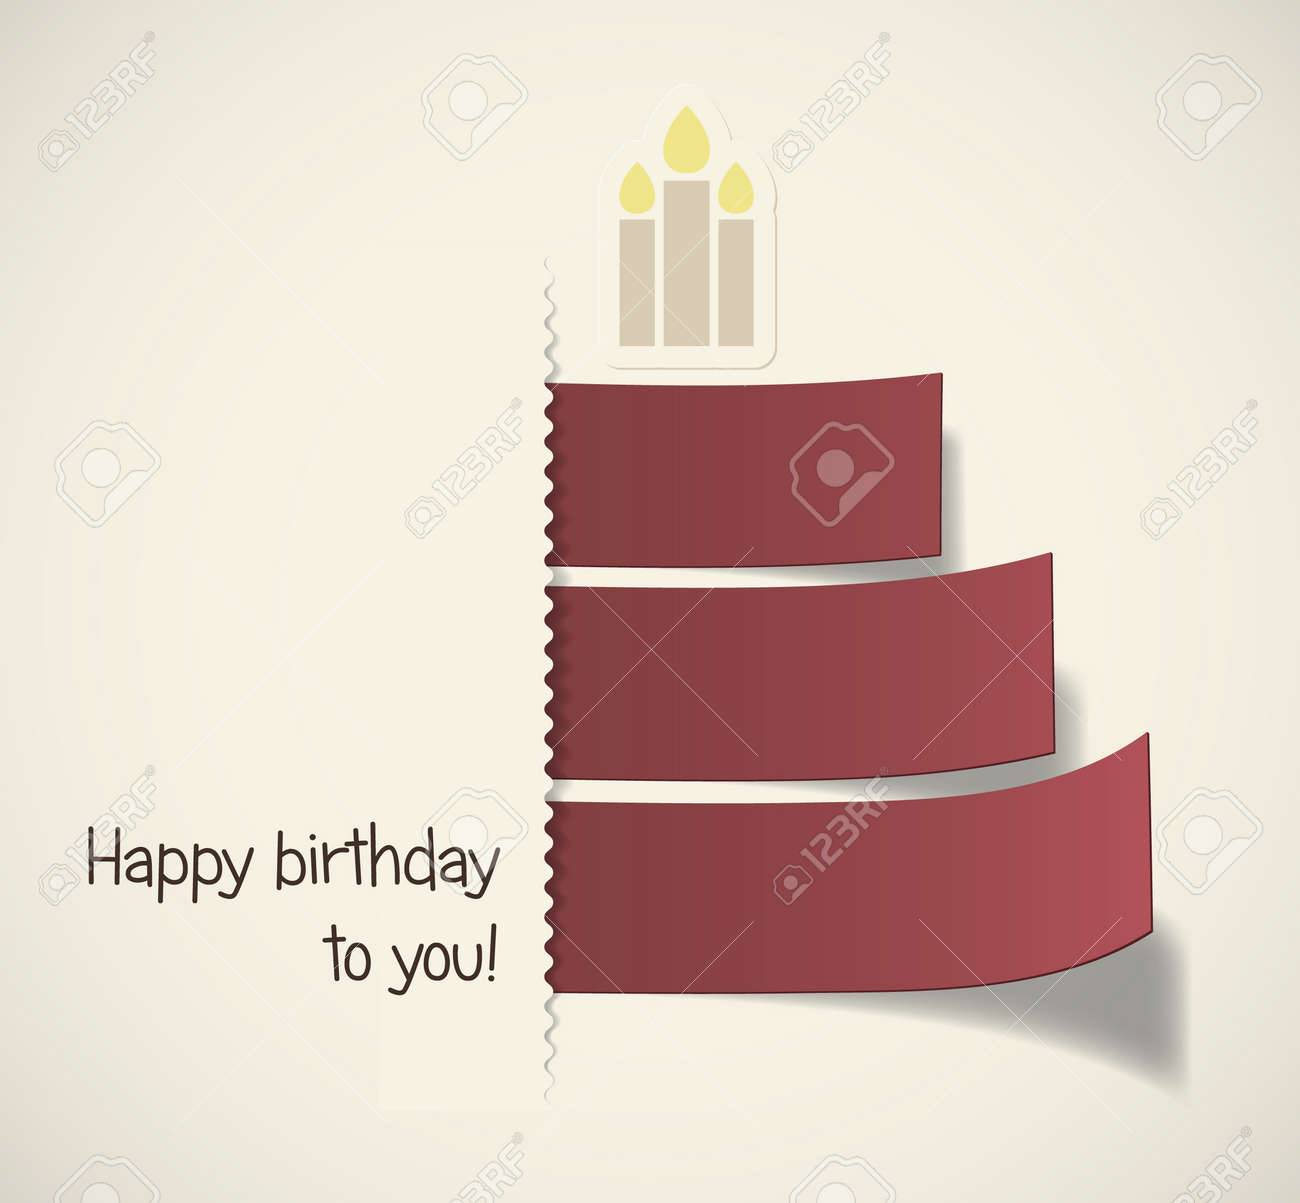 Stylish Birthday Cake Formed By Red Ribbons Eps10 Vector Royalty